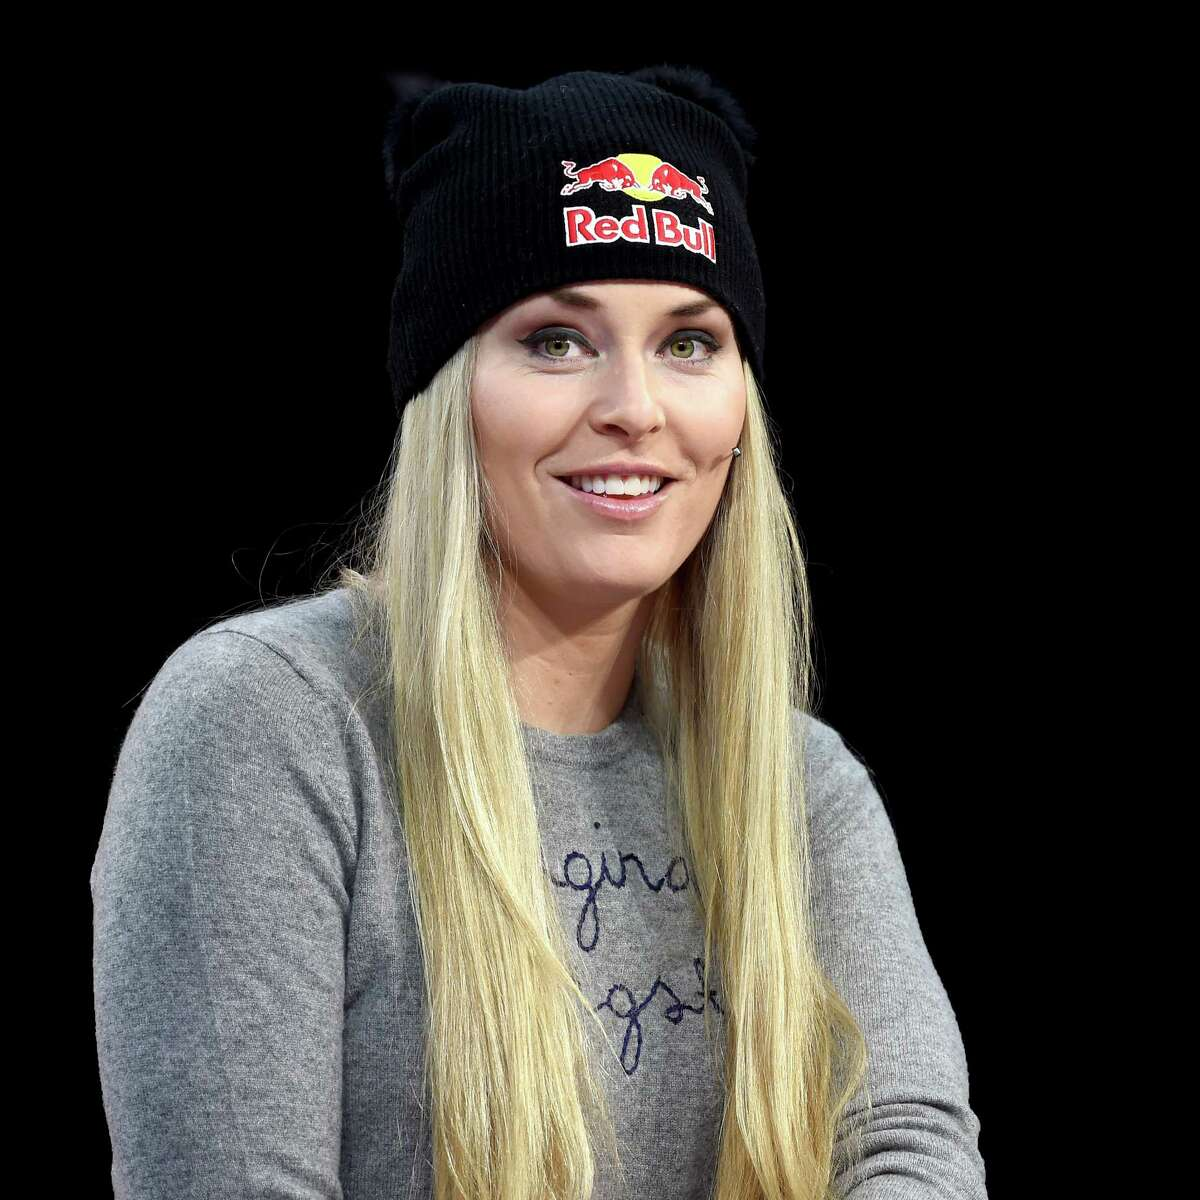 ST MORITZ, SWITZERLAND - FEBRUARY 08: Lindsey Vonn visits the Eurosport studio in St Moritz for an interview by lead presenter and former Olympic triple-jump champion and world record holder, Jonathan Edwards on February 8, 2017 in St Moritz, Switzerland. (Photo by Pier Marco Tacca/Getty Images for Eurosport) ORG XMIT: 1000003361